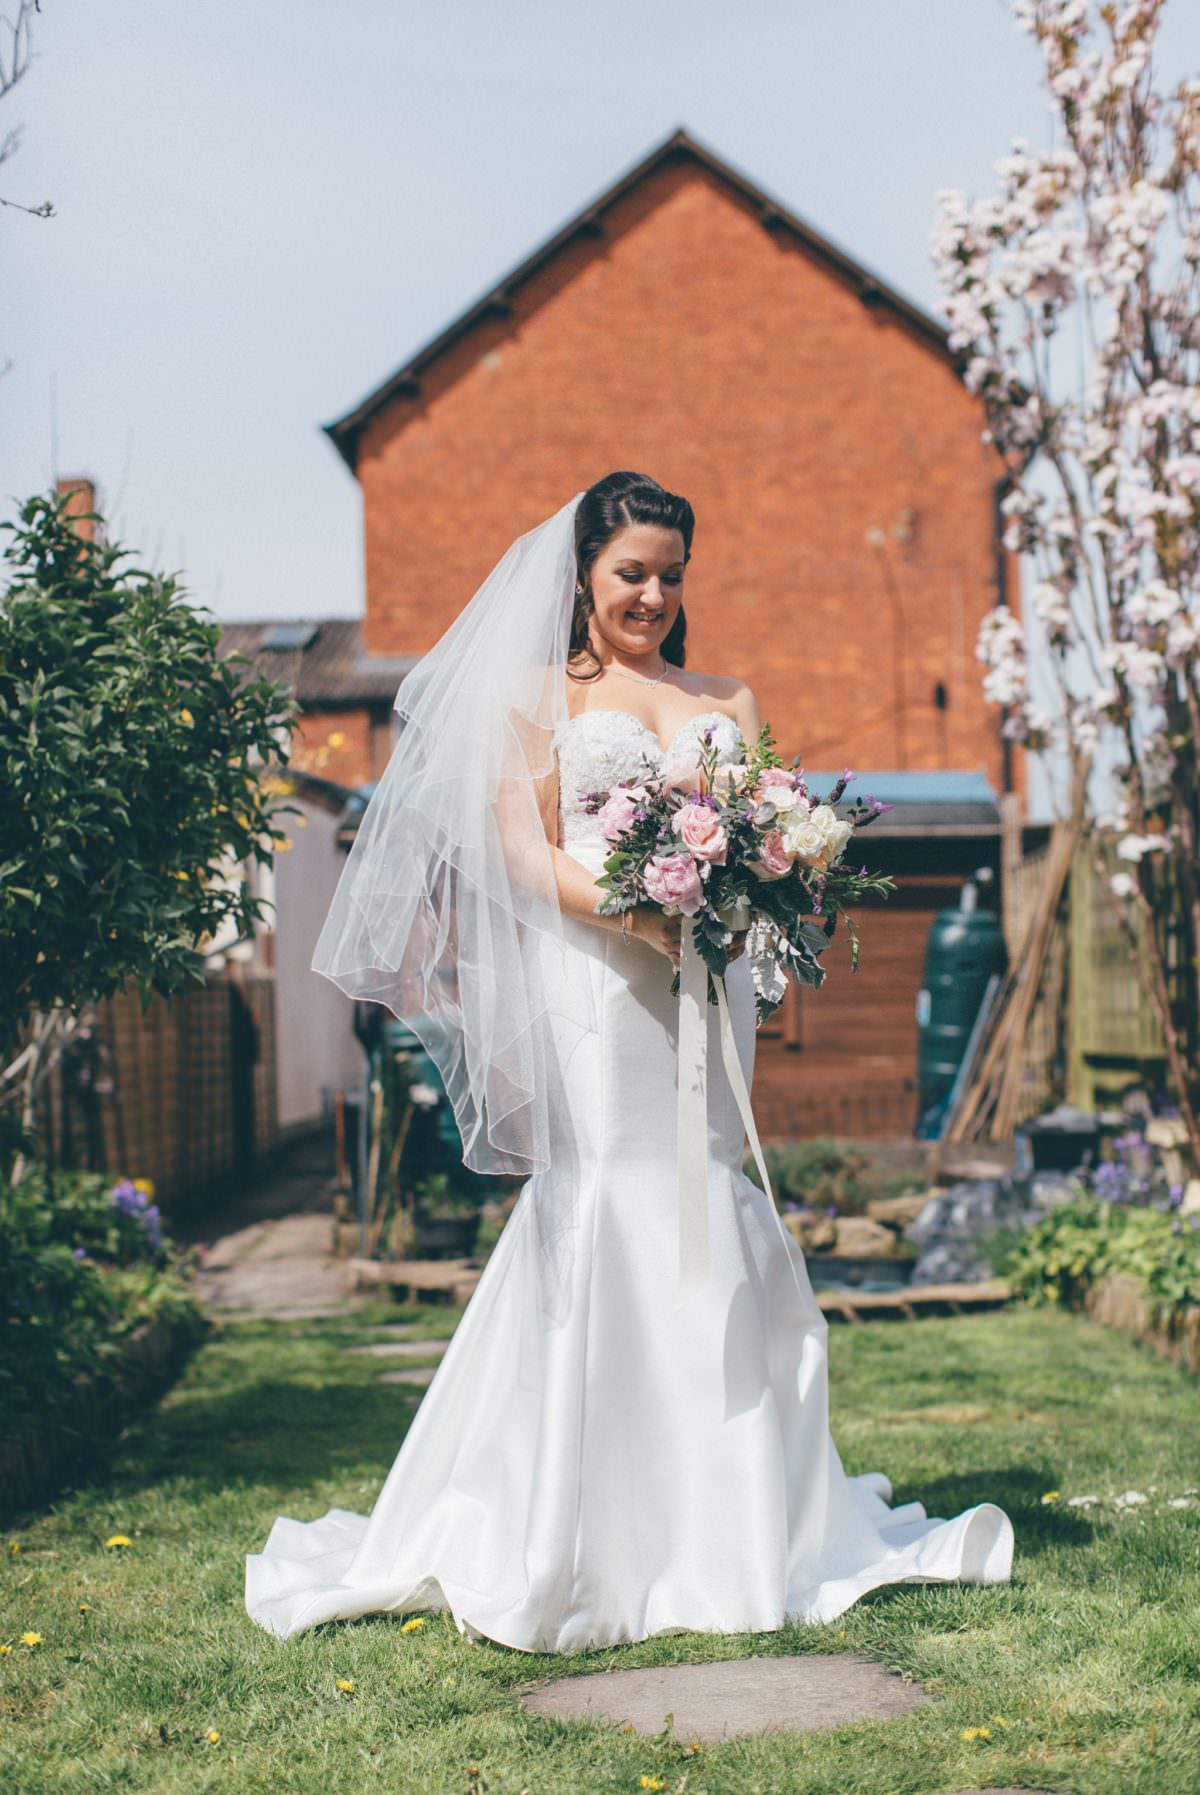 cripps_barn_gloucesterhsire_welsh_wedding_photographer_rachel_lambert_photography_jordan_amy_ 23